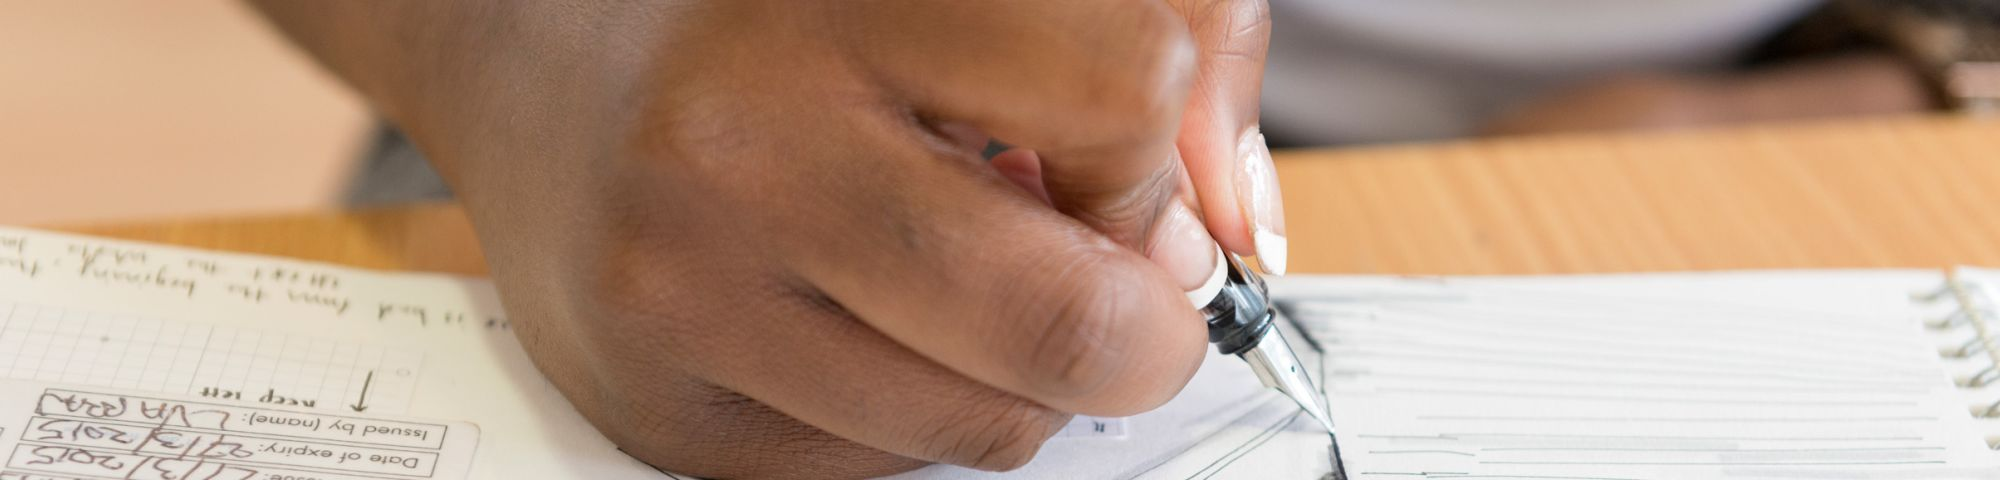 Close up shot of a hand holding a pen that is drawing on paper